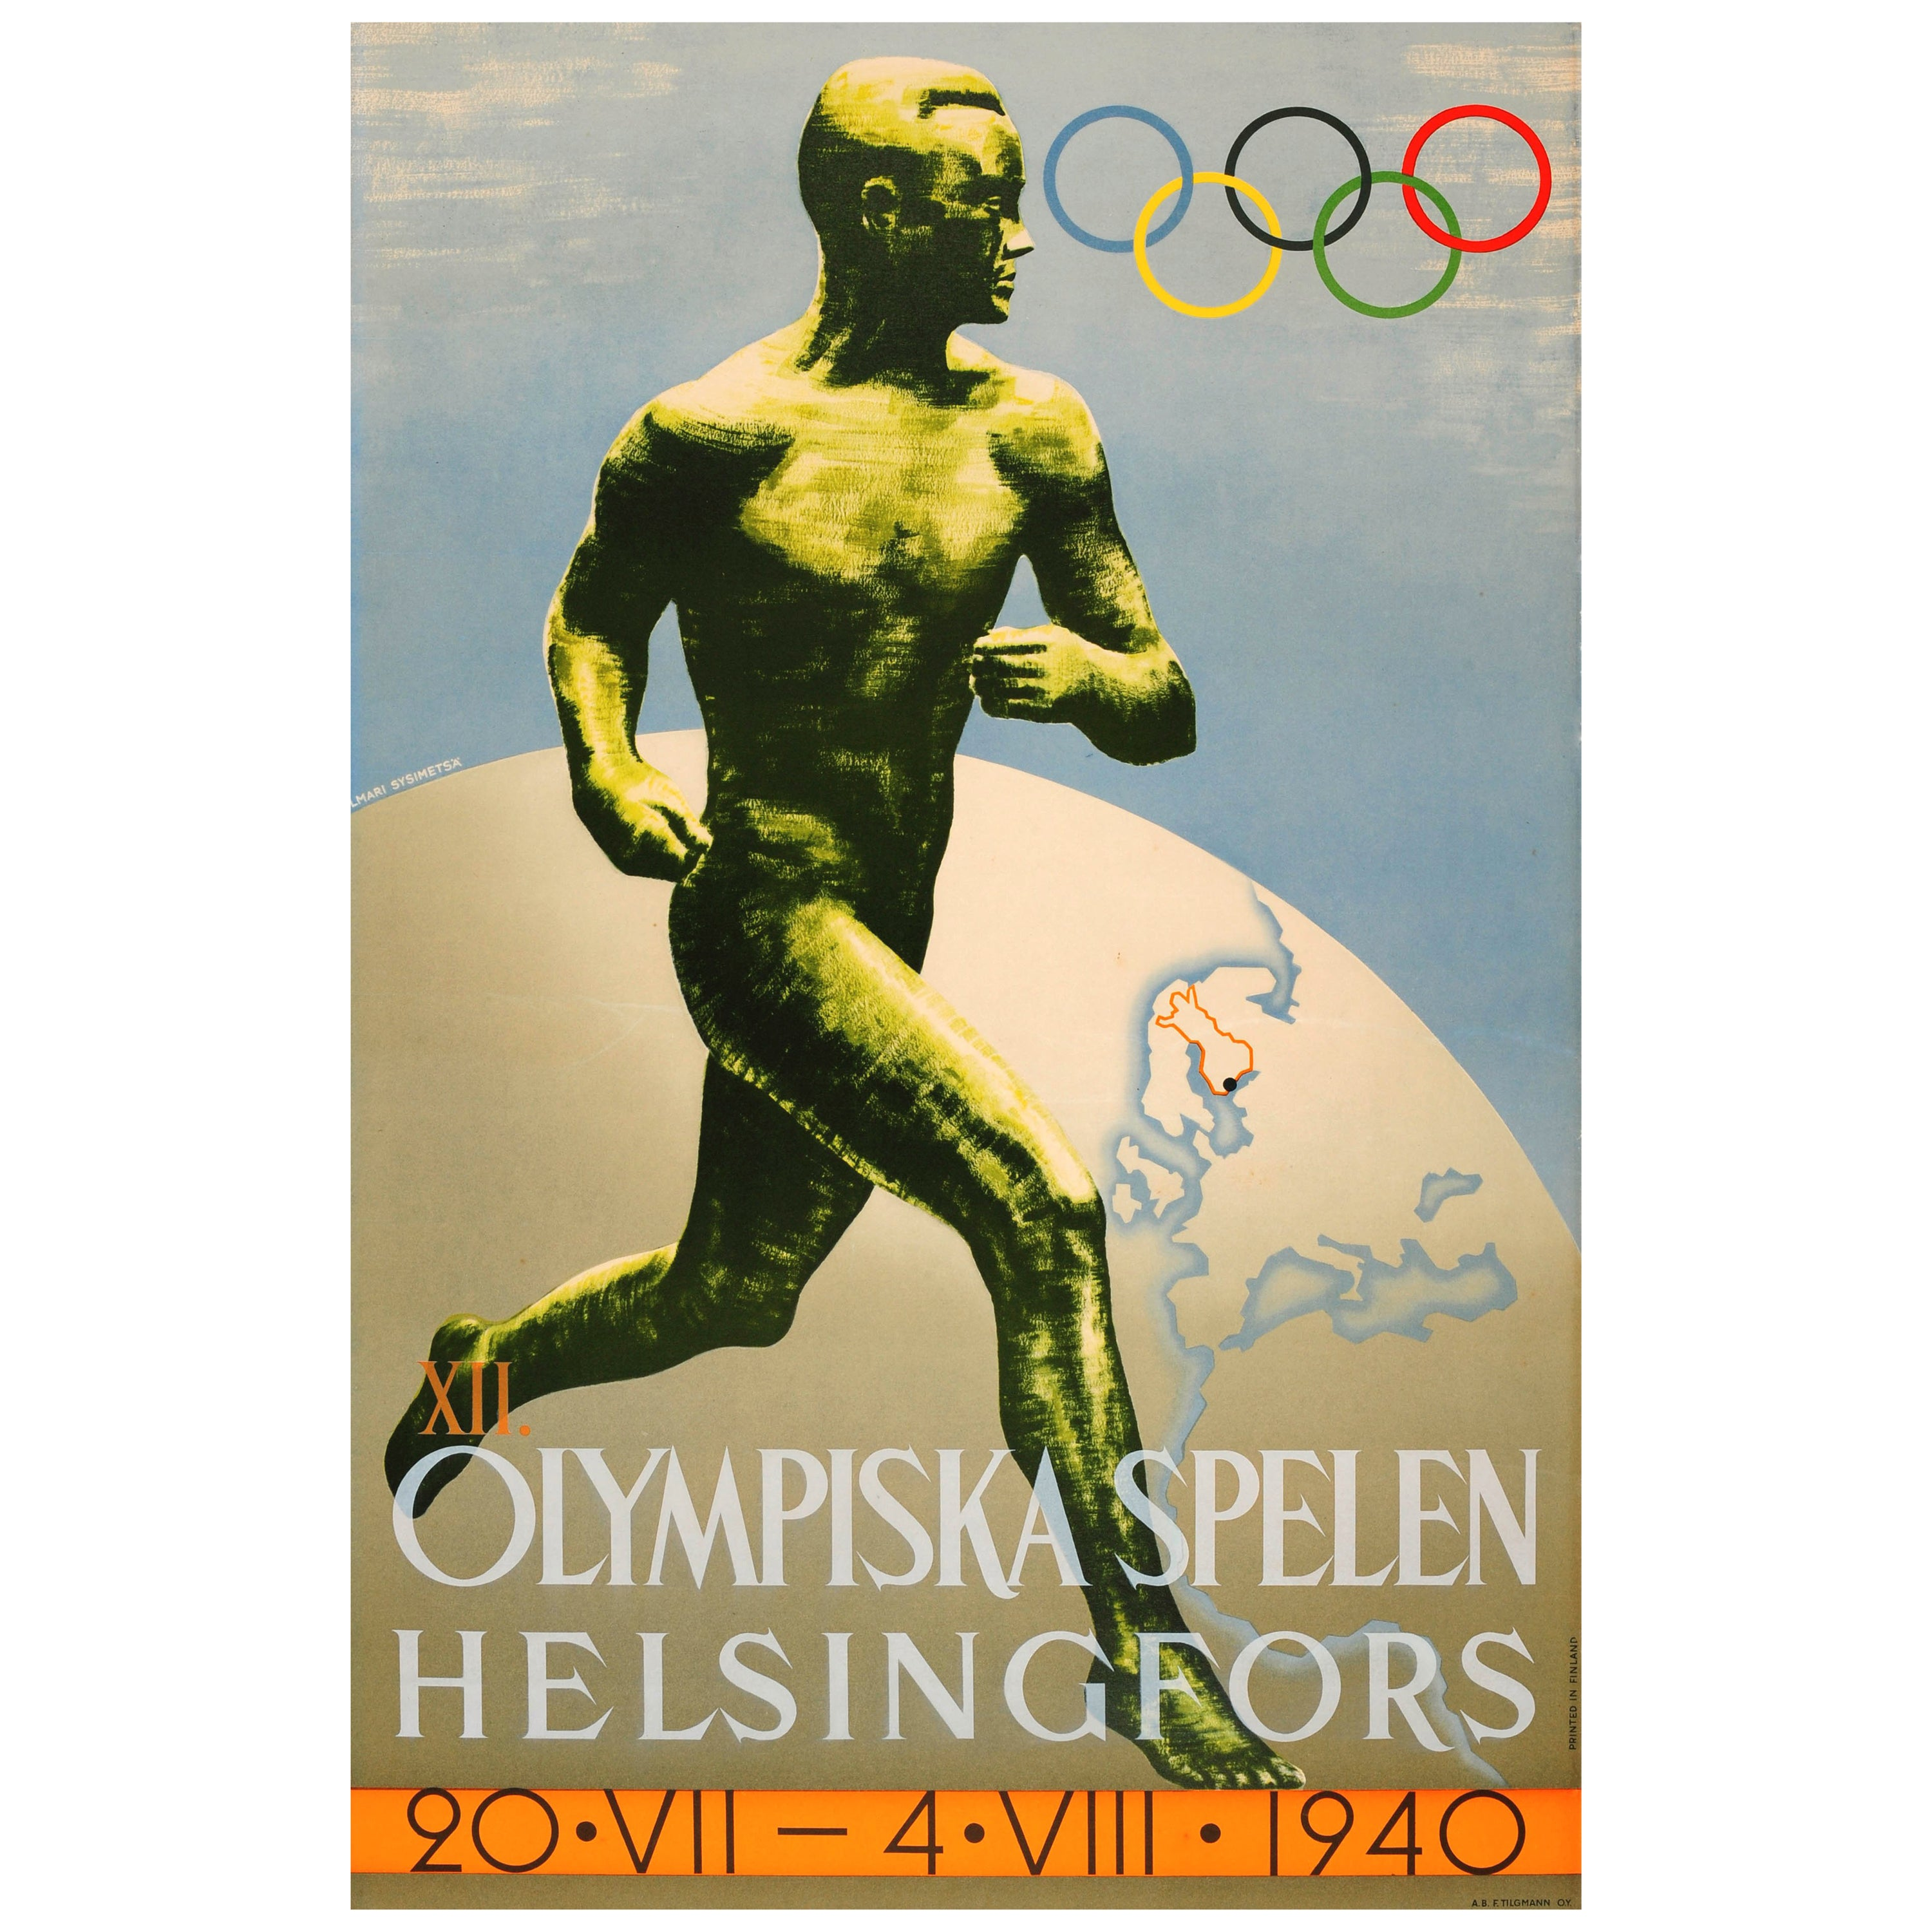 Original Vintage Olympics Sport Poster For The 1940 Summer Olympic Games Finland